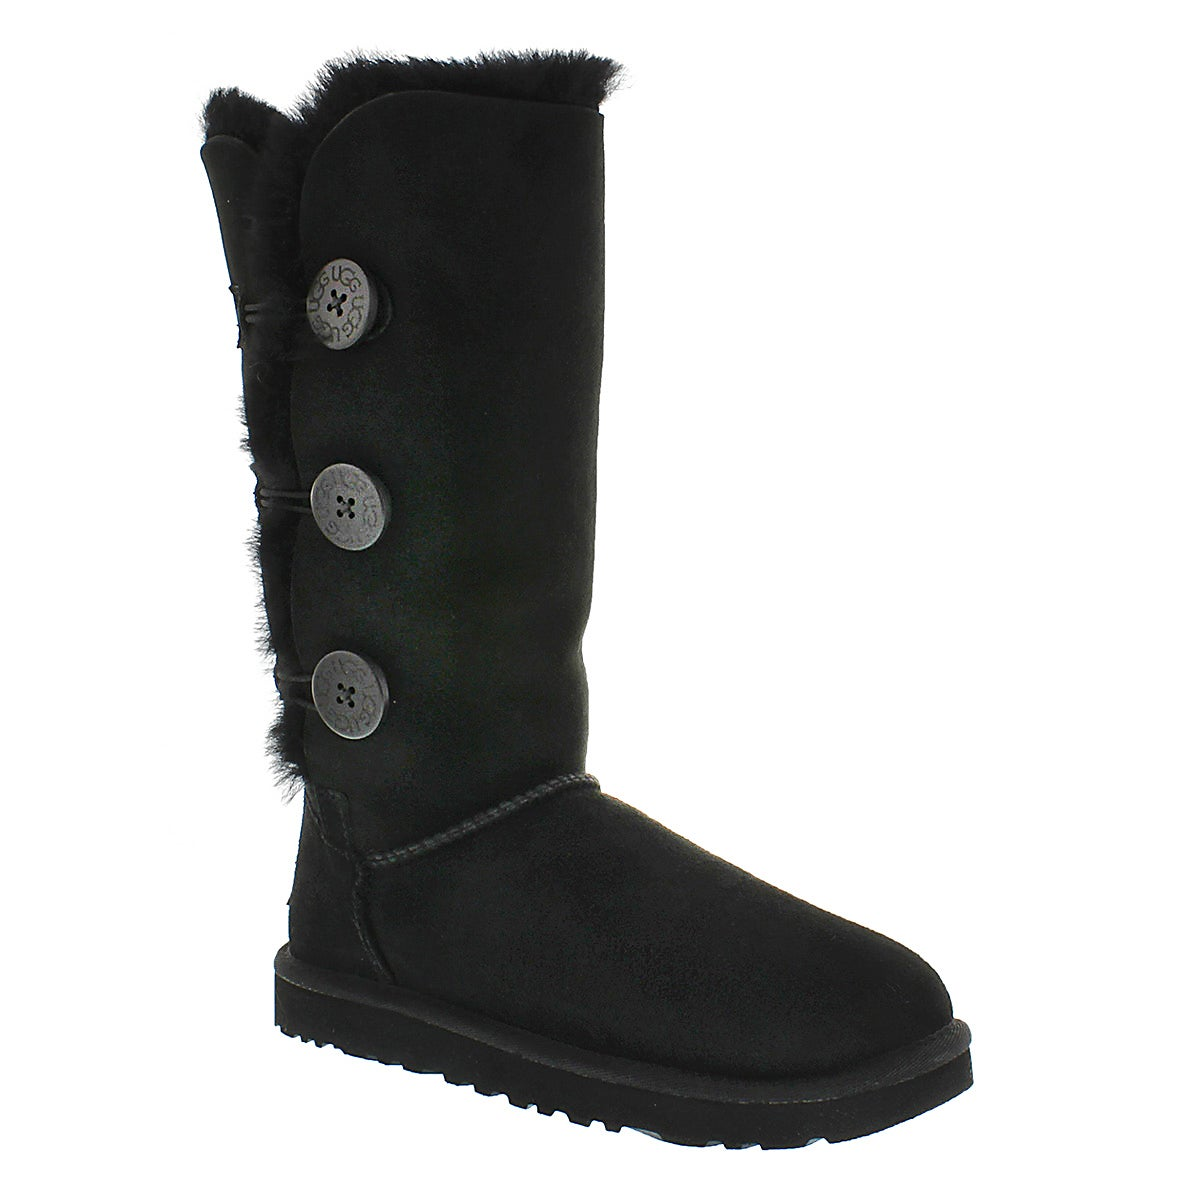 Women's BAILEY BUTTON TRIPLET fashion boots